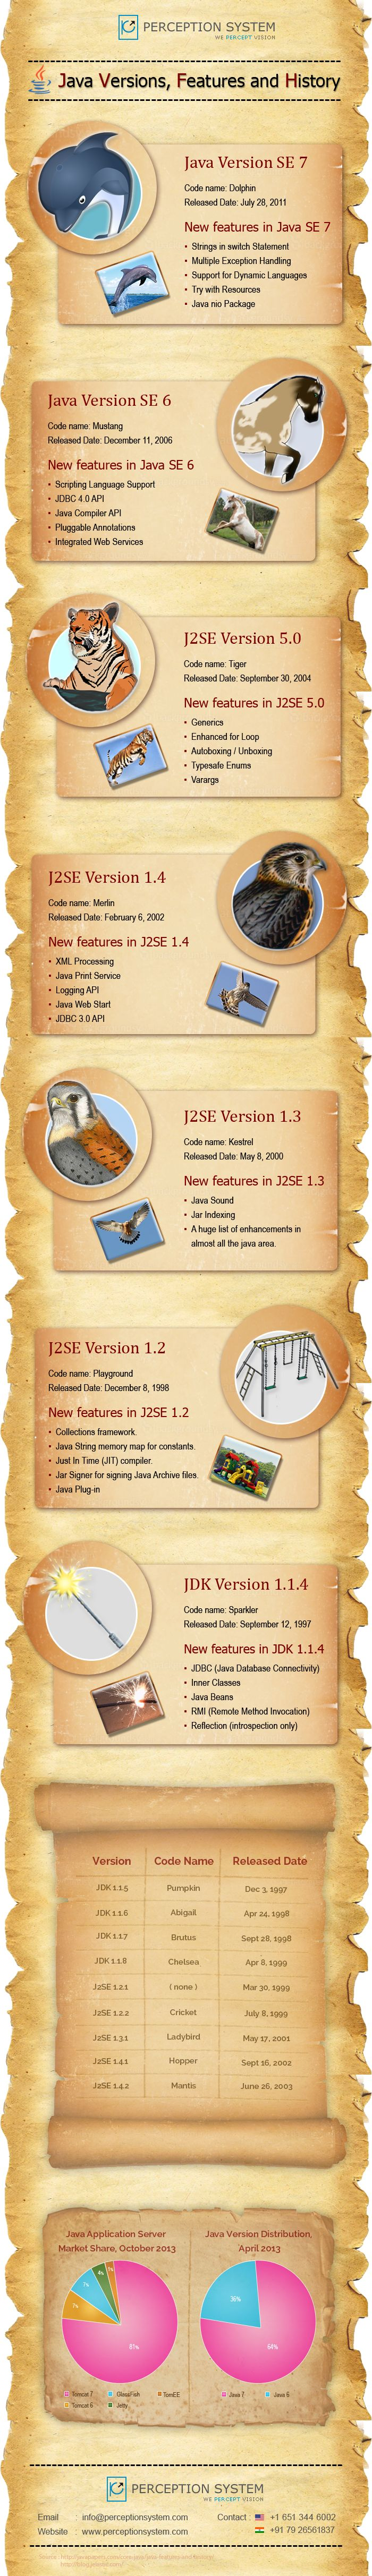 History of Java - Versions, Release Date and Distribution..  #java #infographics